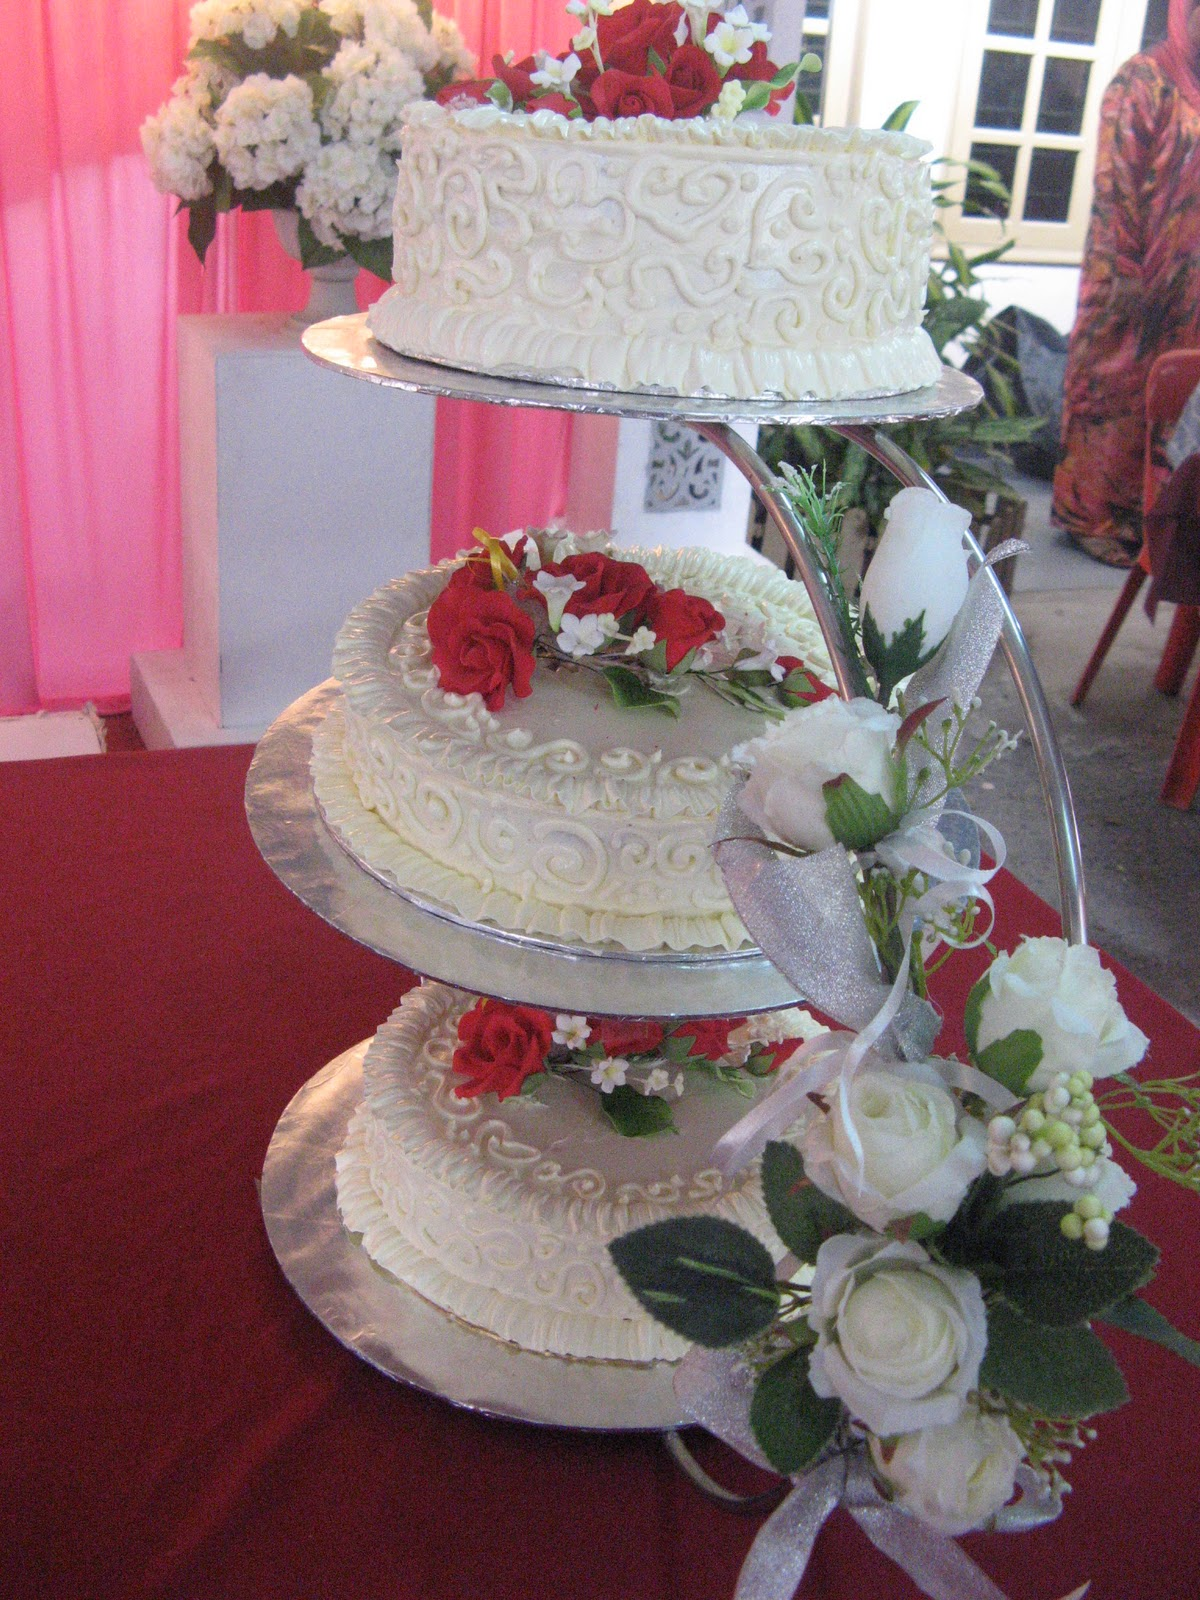 BAKERINACAKE 3 TIER WEDDING CAKE RED N WHITE THEME